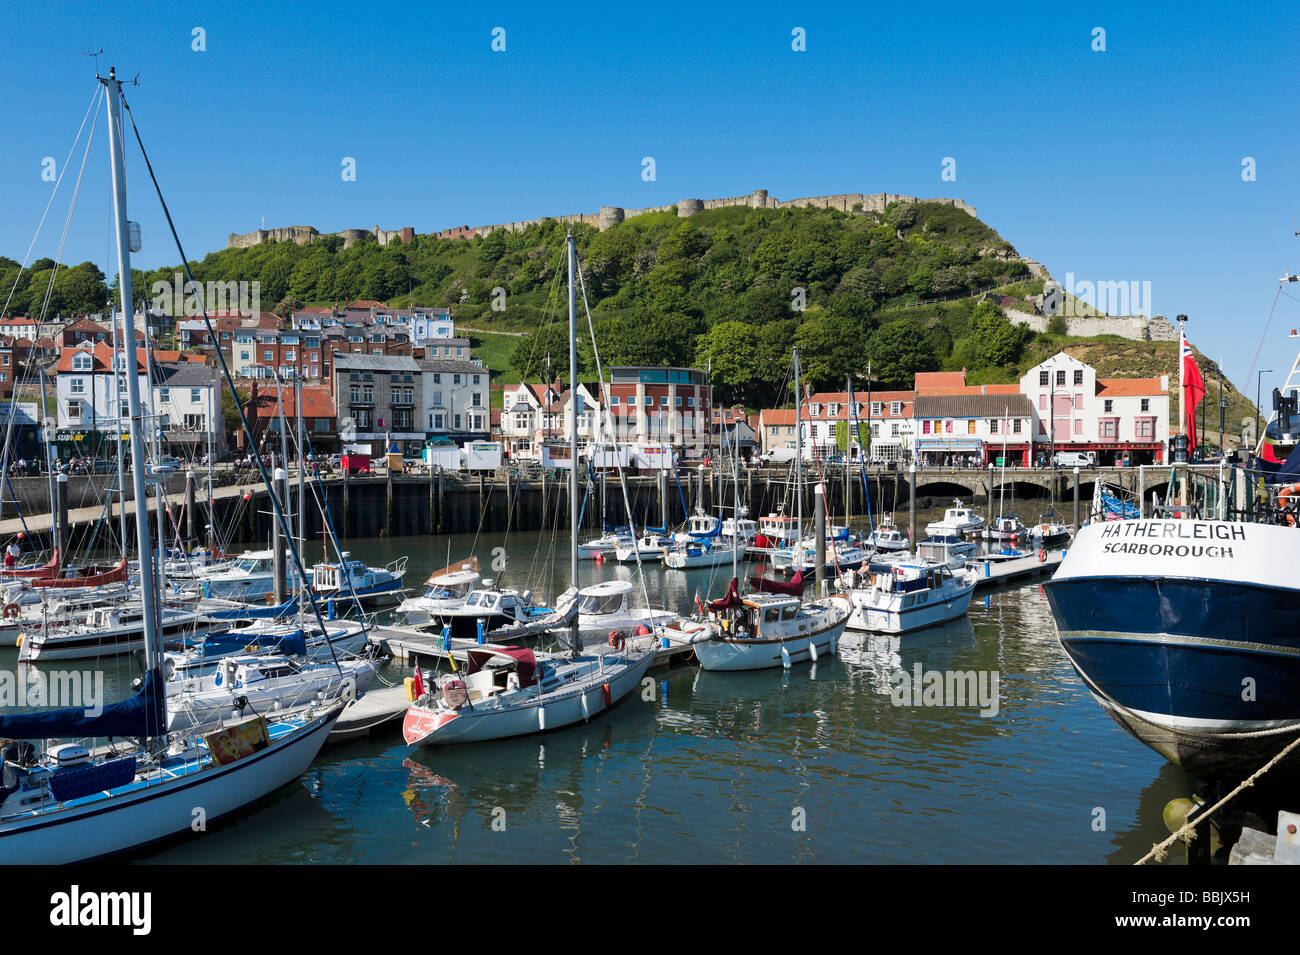 Castle and old town from across the harbour, Scarborough, East Coast, North Yorkshire, England - Stock Image